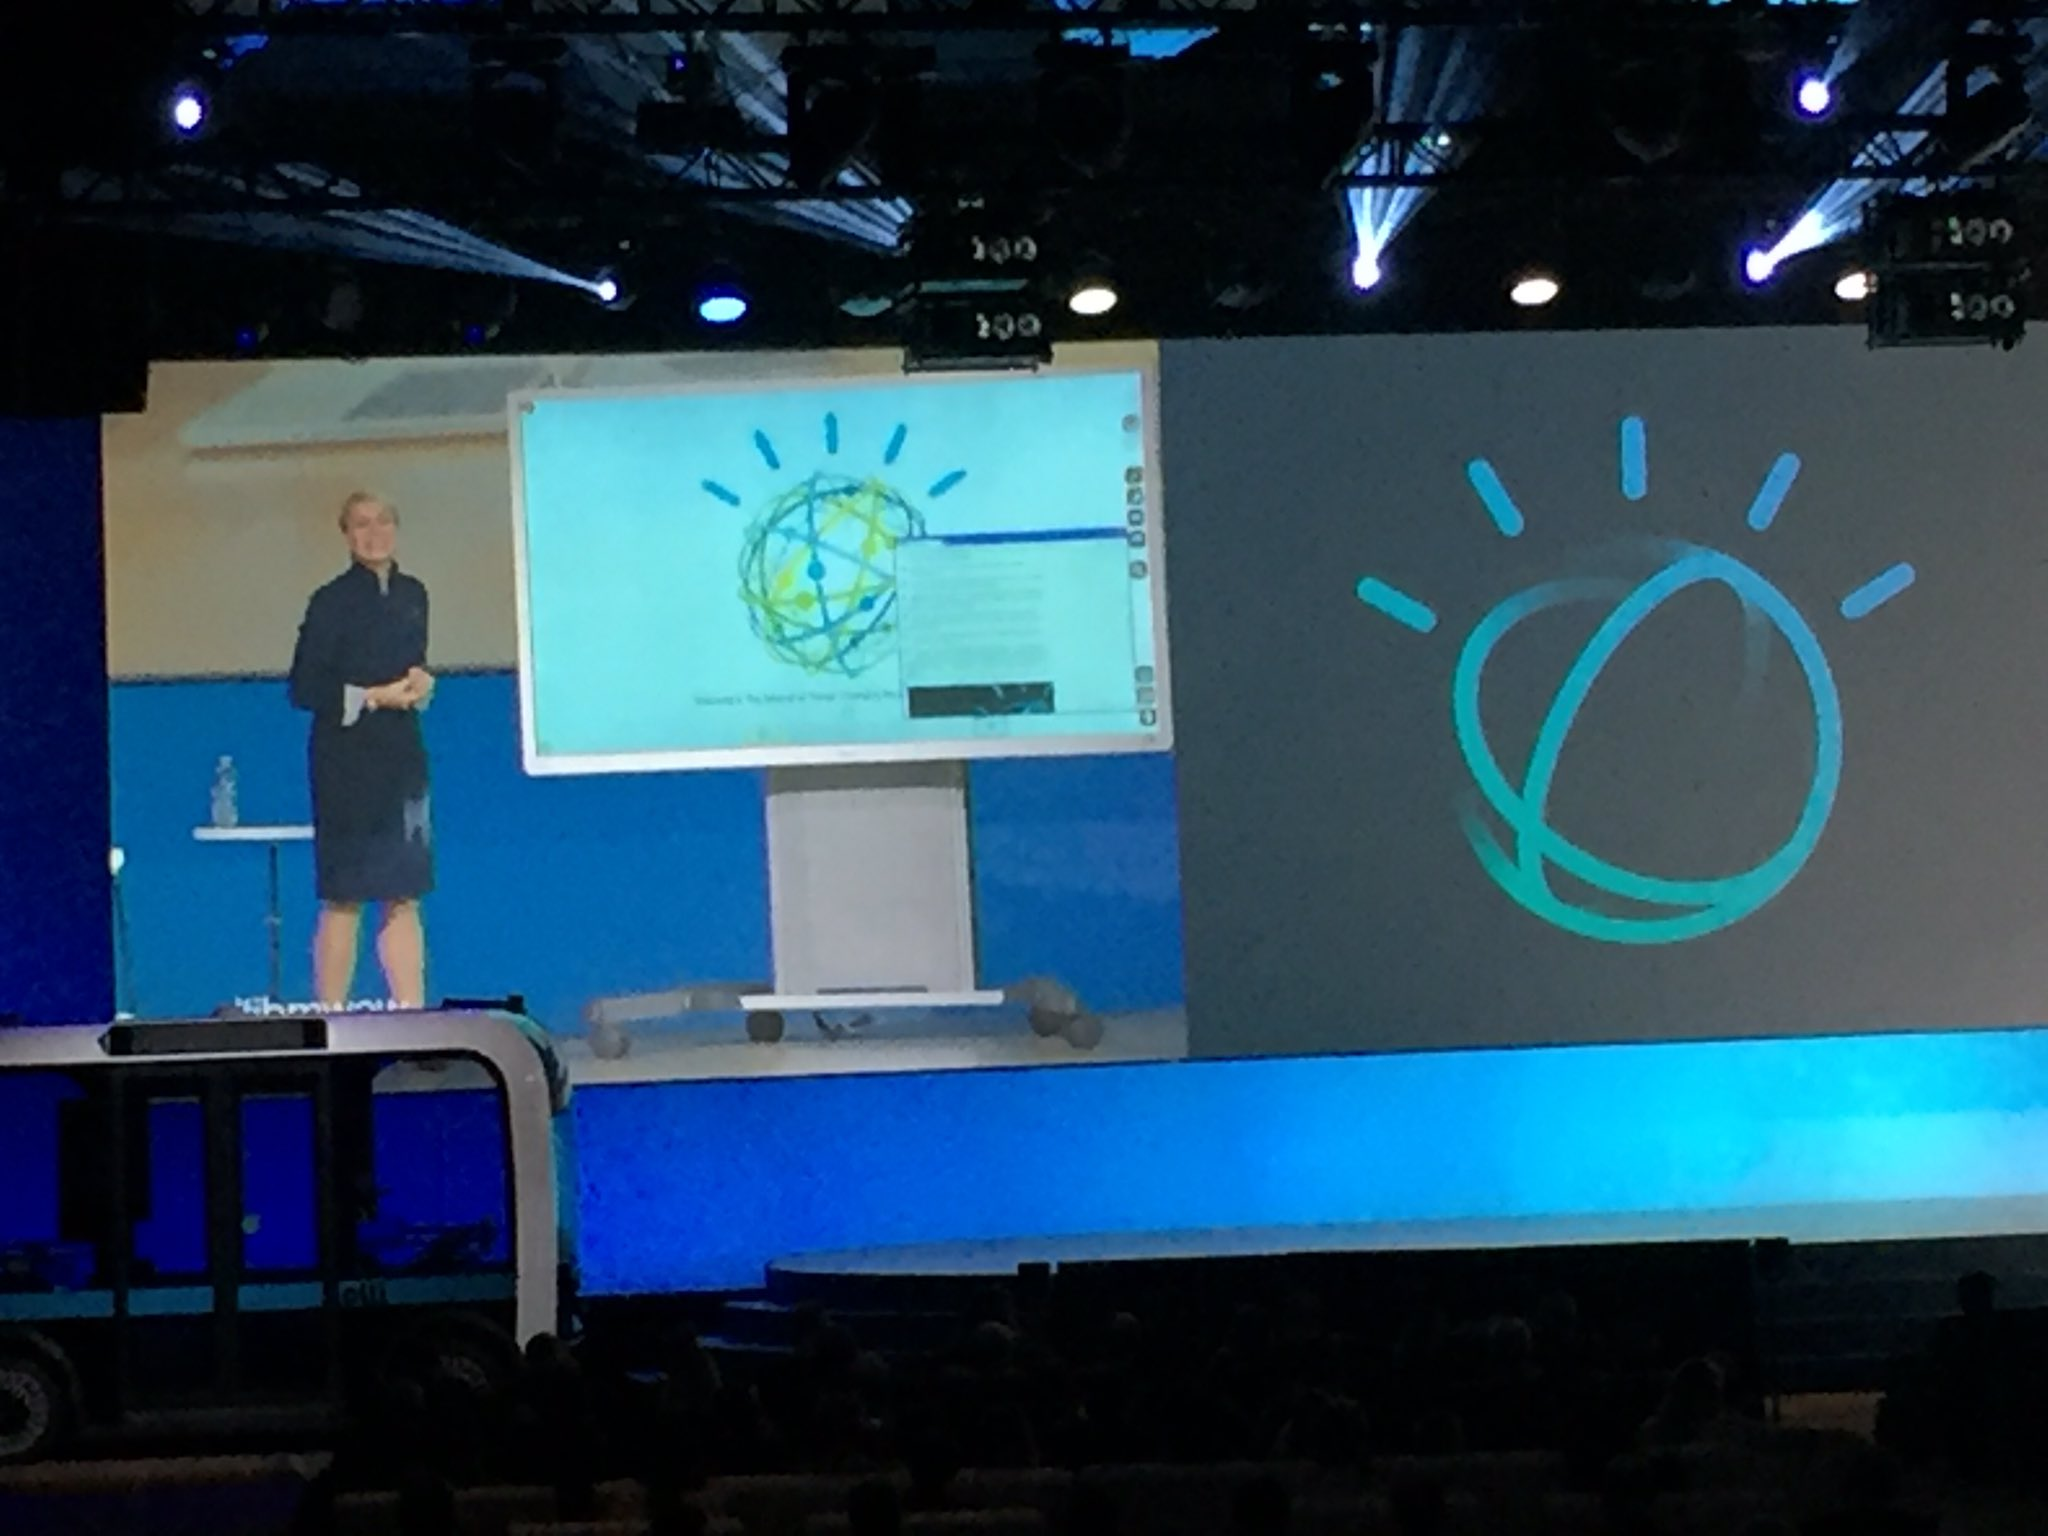 @harrietgreen1 Rita the Smart Connected Whiteboard Captures Your Team's Brightest Thoughts. #ibmwow #WatsonIoT #internetofthings https://t.co/MxtRgSYNVF